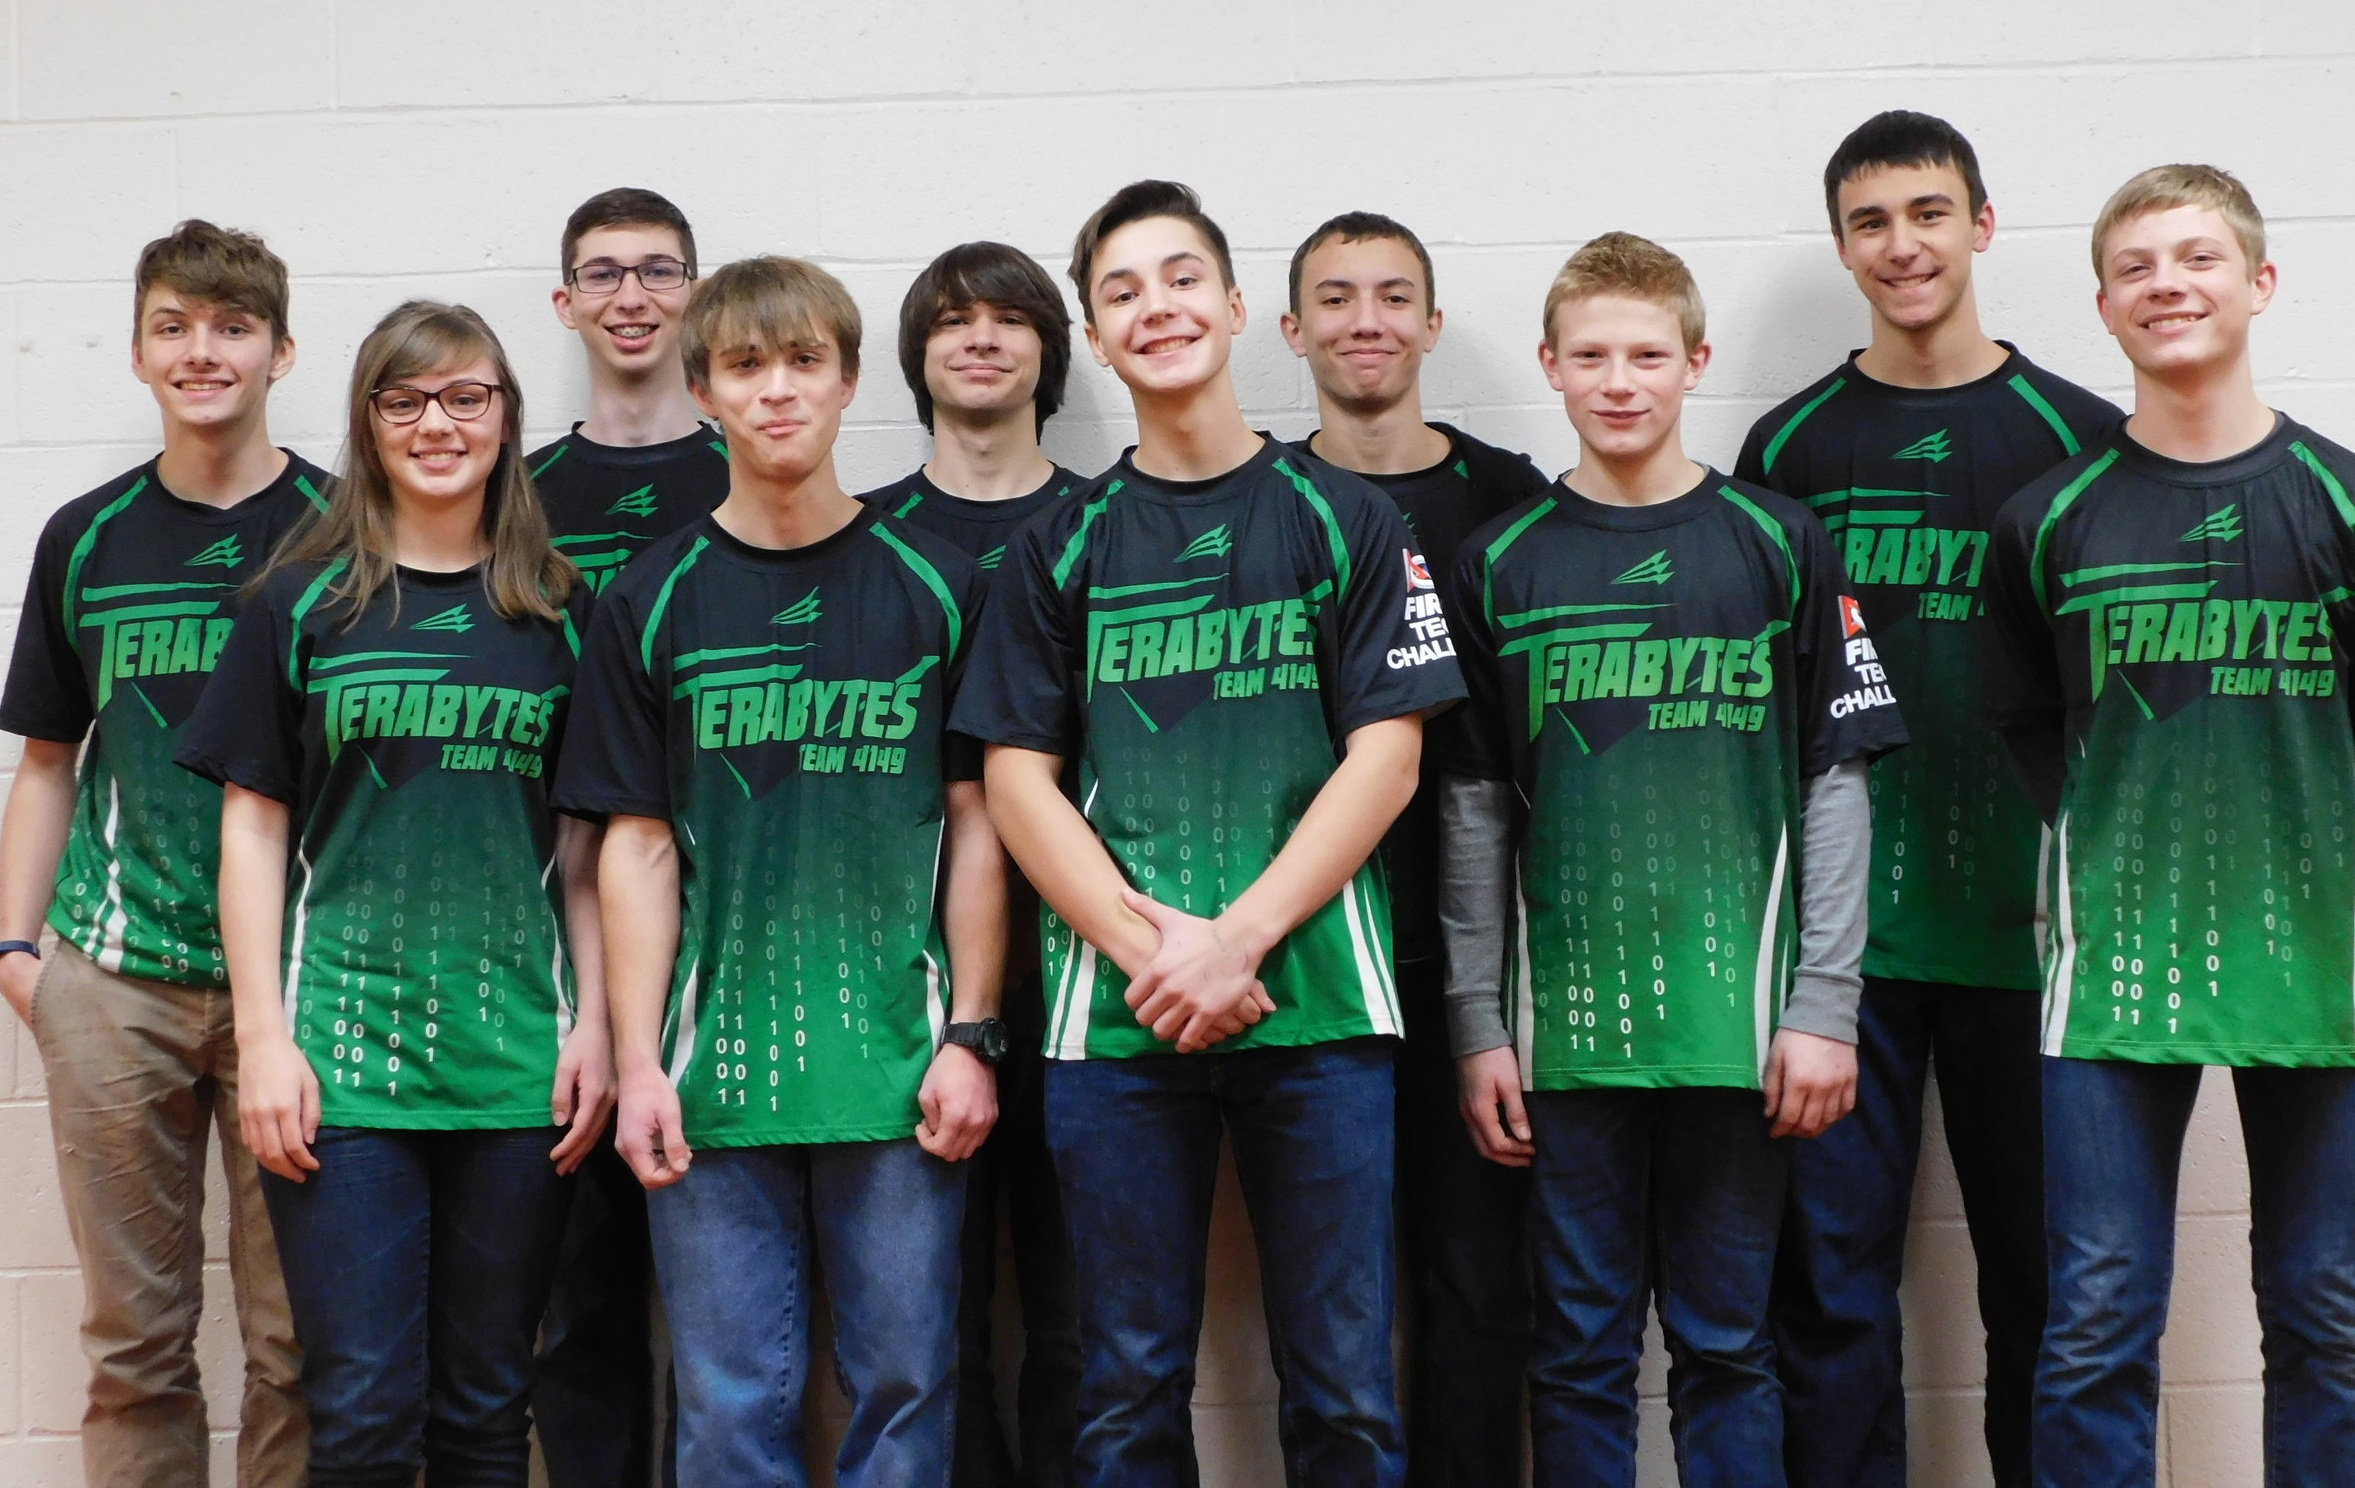 From Left to Right: Ian, Amy, Noah, Jacob, Josh, Andrew L., Micah, Andrew T., Ronnie, Luke.